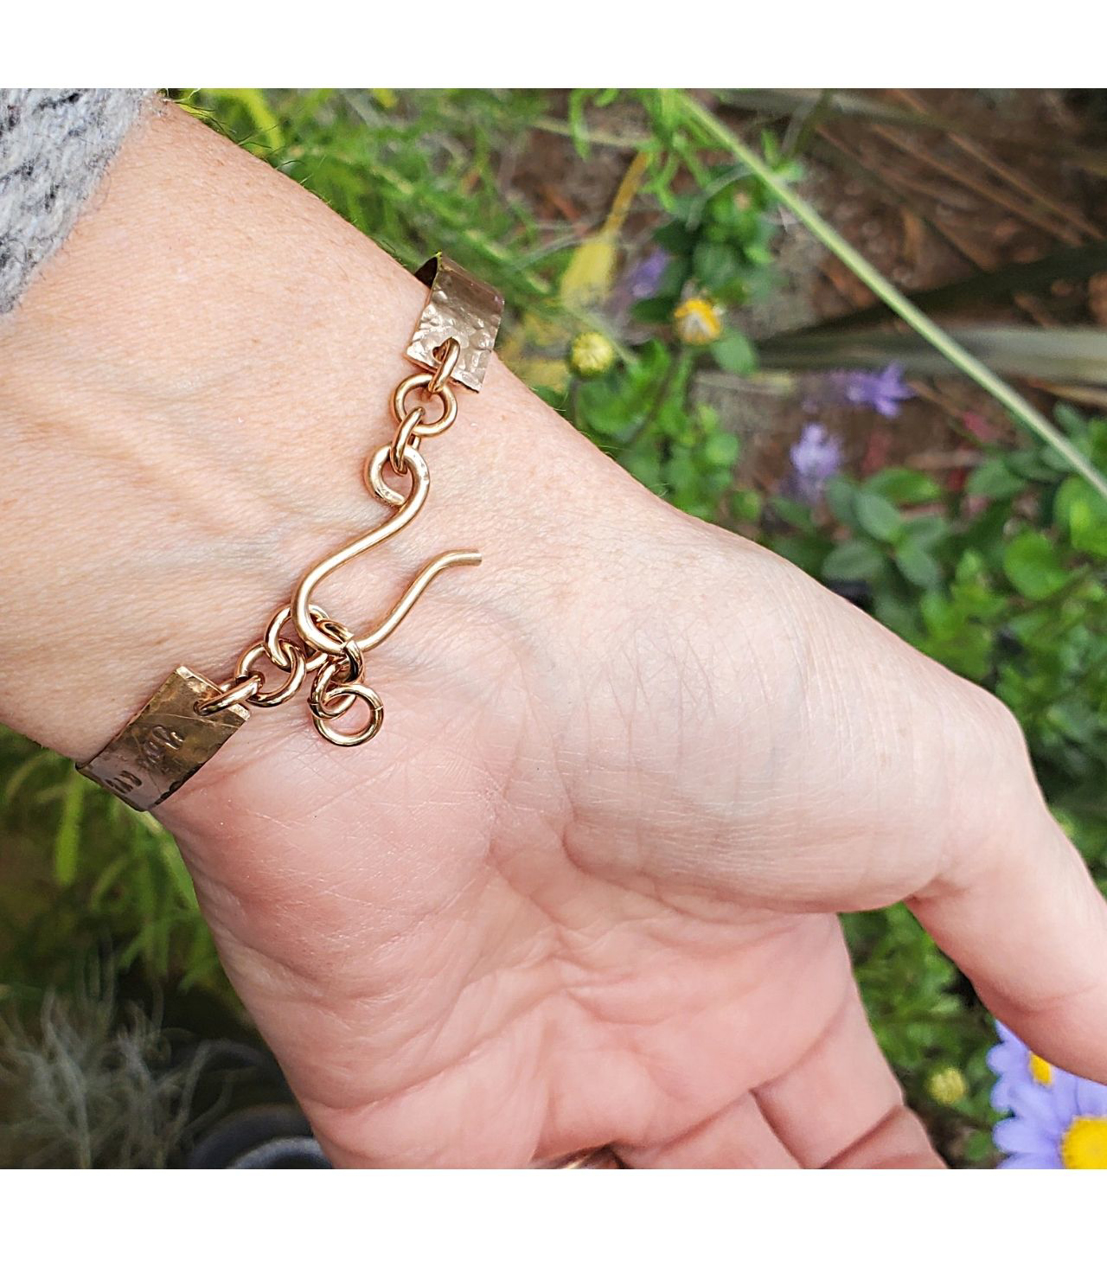 backside of You are Loved bronze bracelet with hook clasp